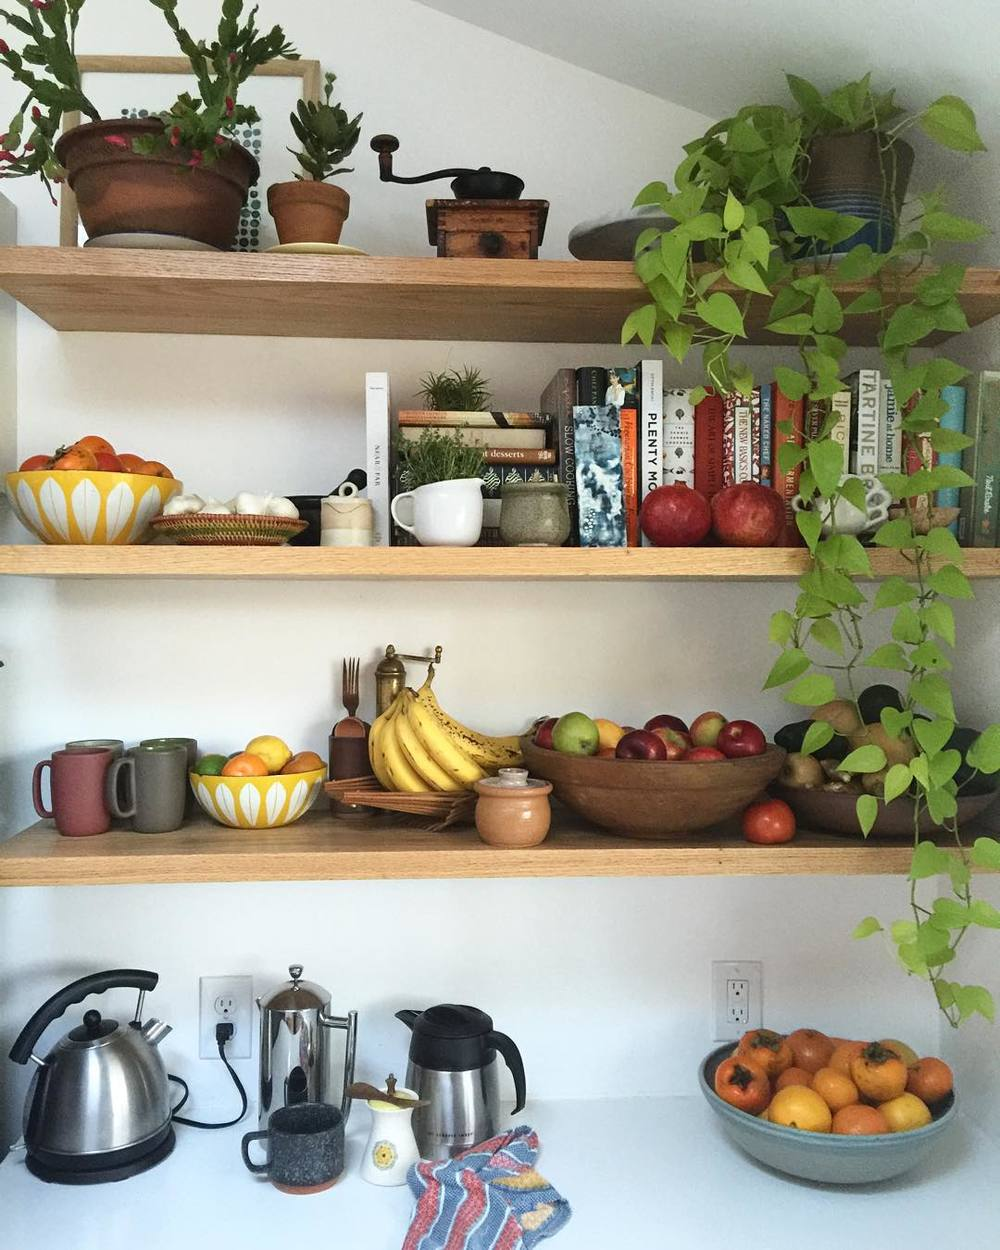 So many of my favorite finds are on display on the open shelves in our kitchen; ceramic bowls, canisters, and dishes, baskets, Catherine Holm bowls, wooden spoons.